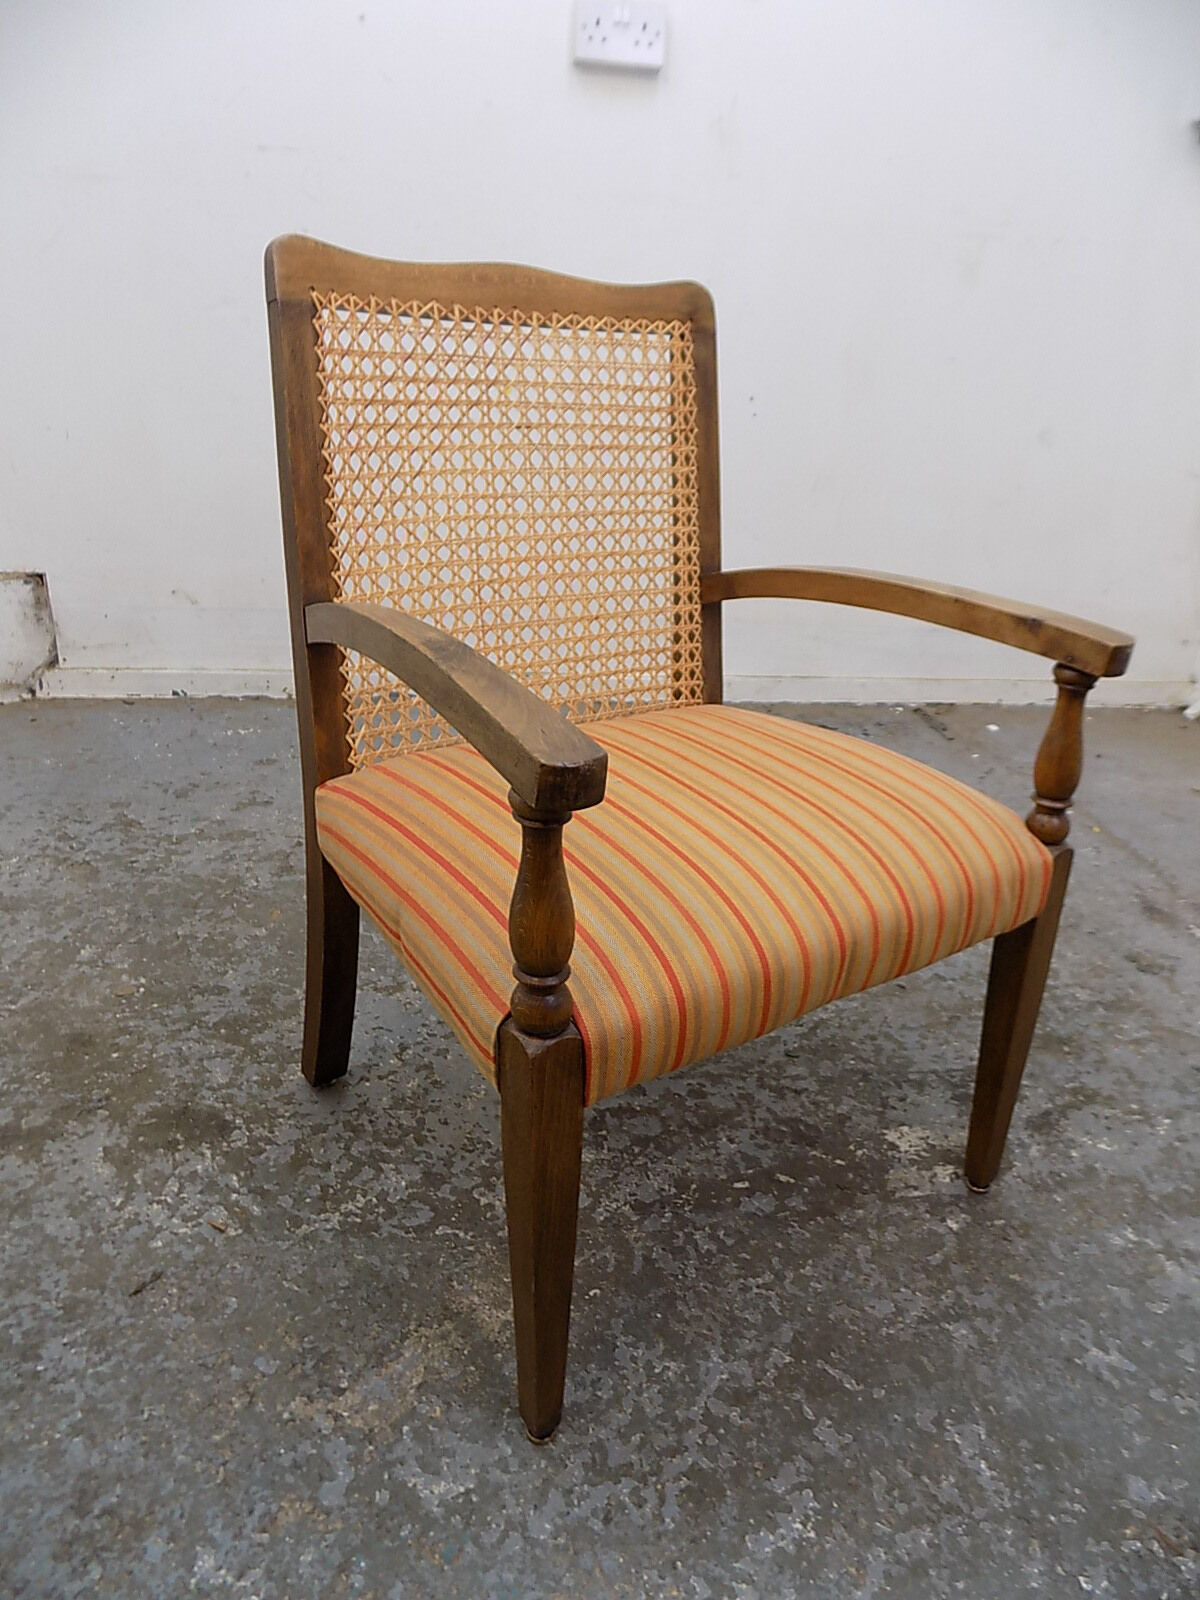 vintage,1940's,small,beech,wicker,arm chair,chair,conservatory,hall,bathroom,bed